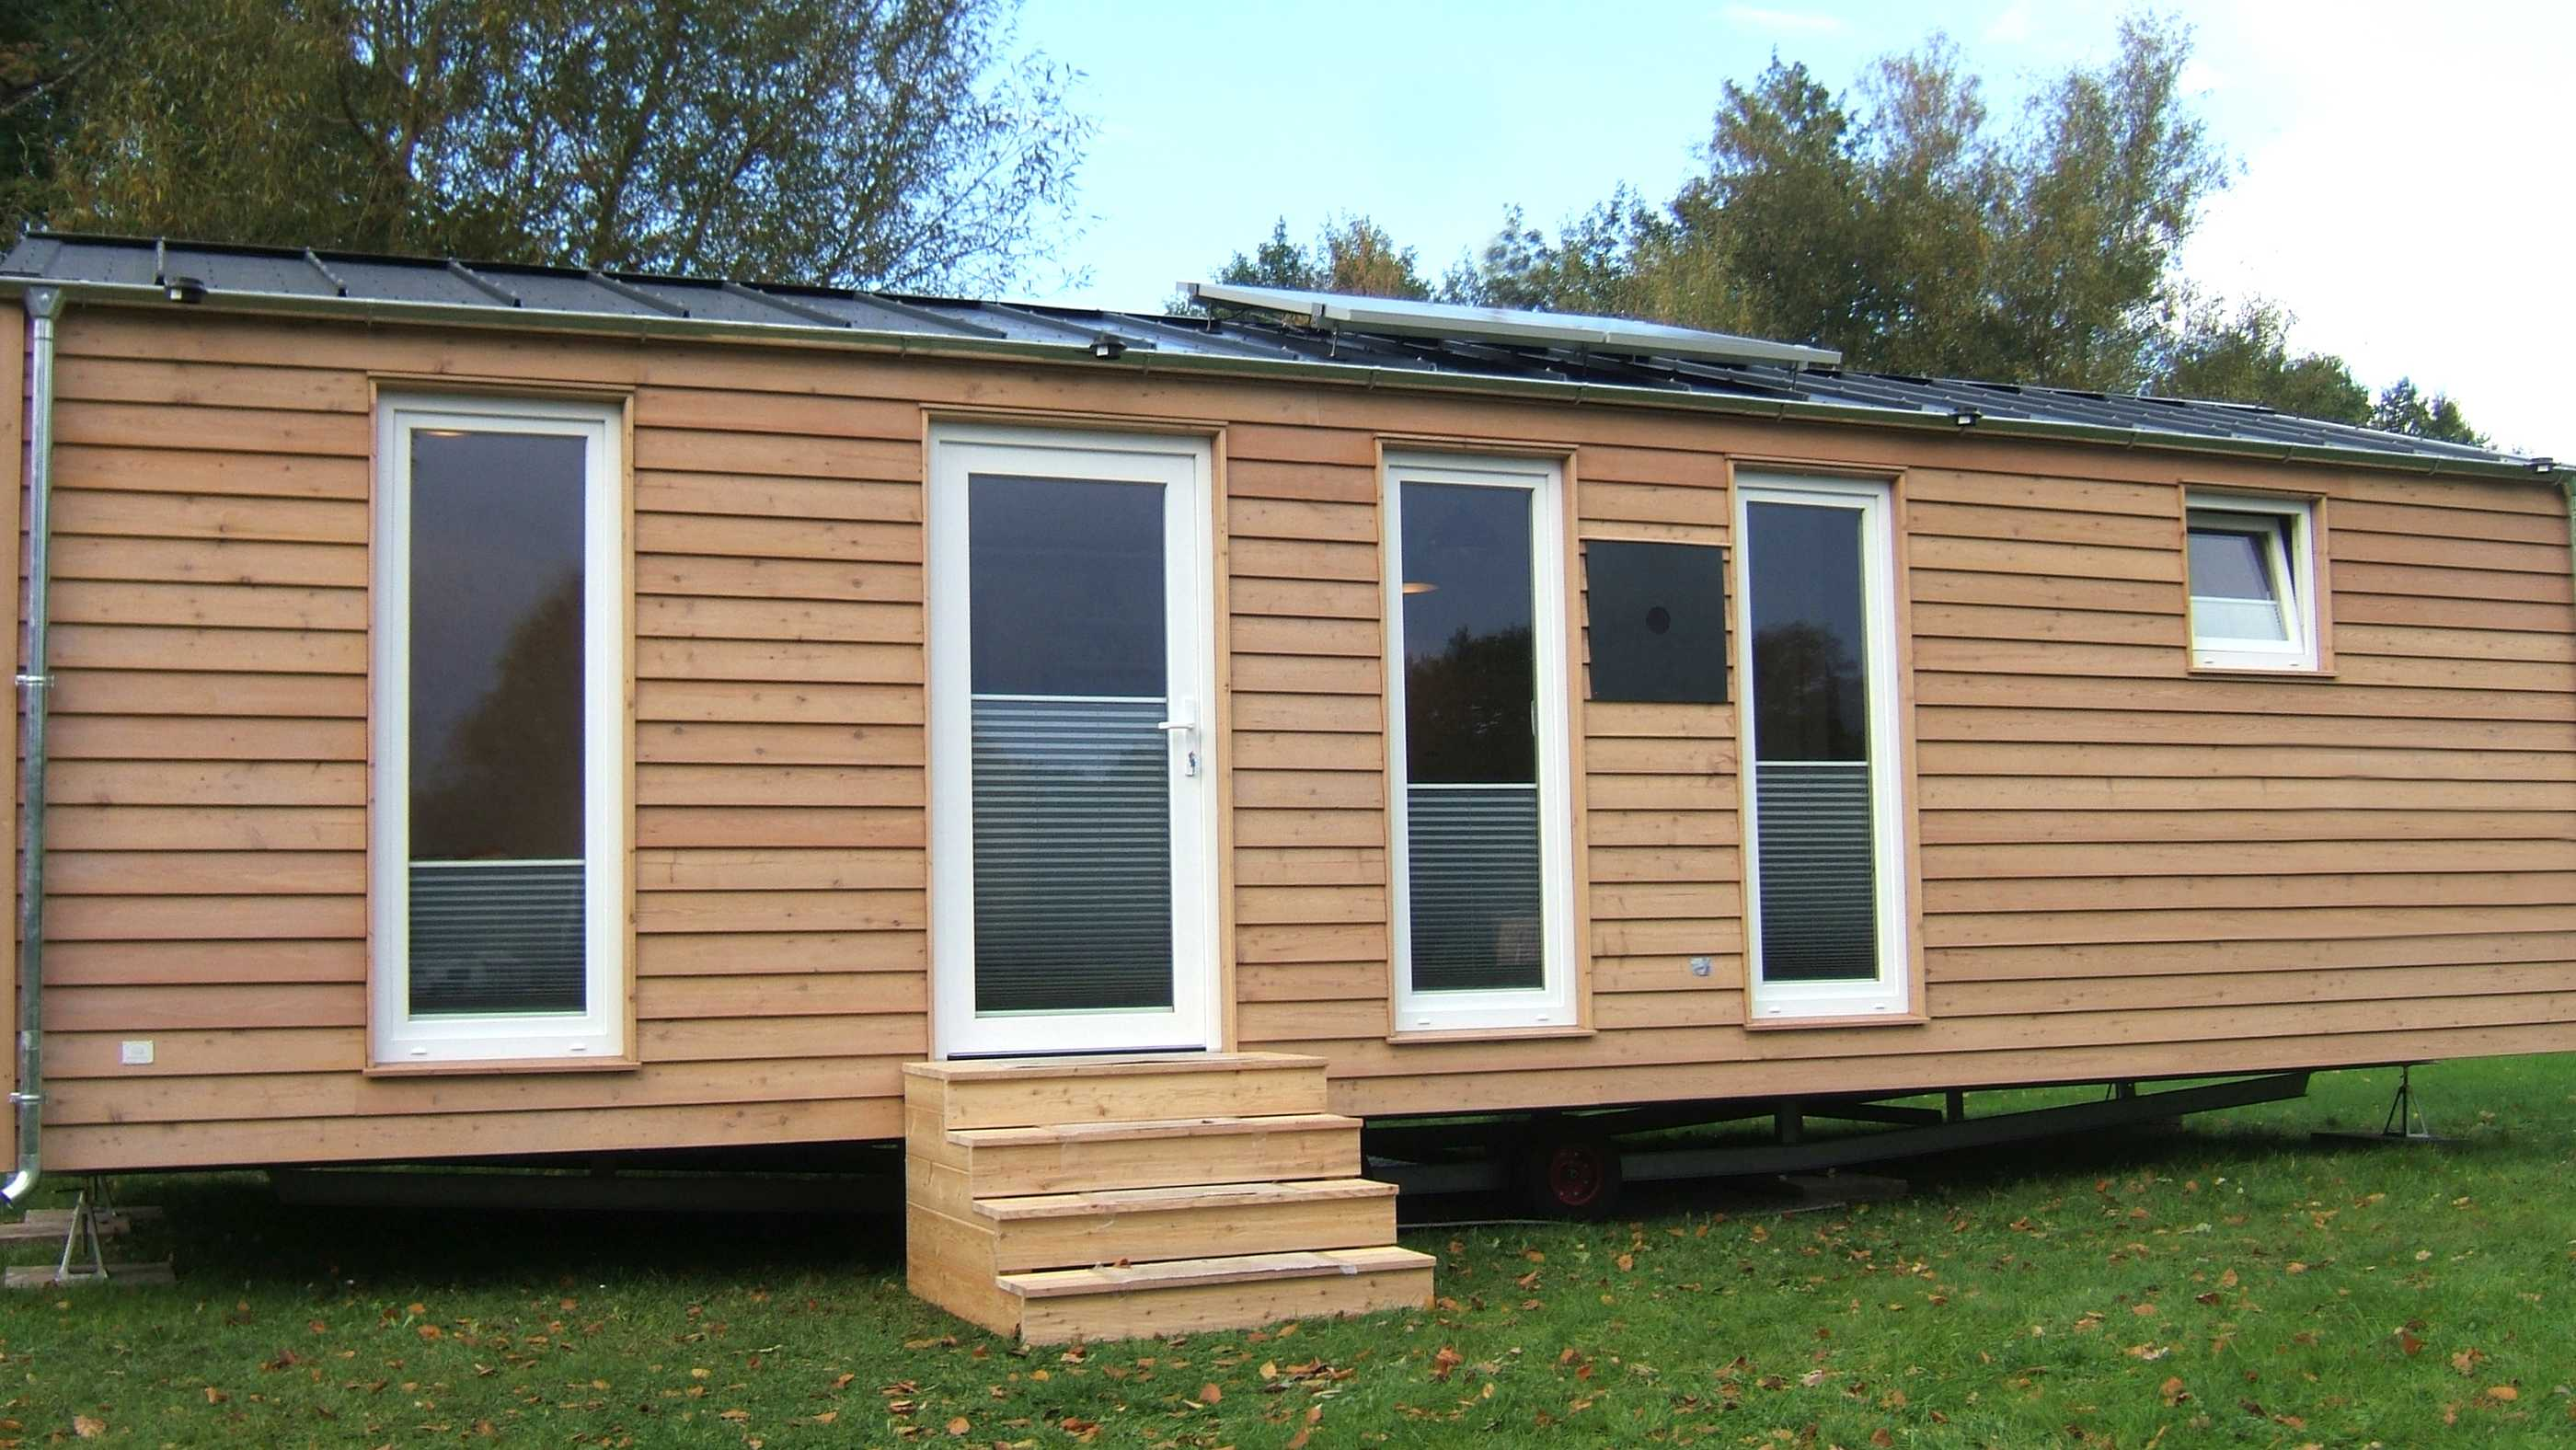 Tiny-House-Modell Mobile Home von TINY HOUSE Cronin & Liese.